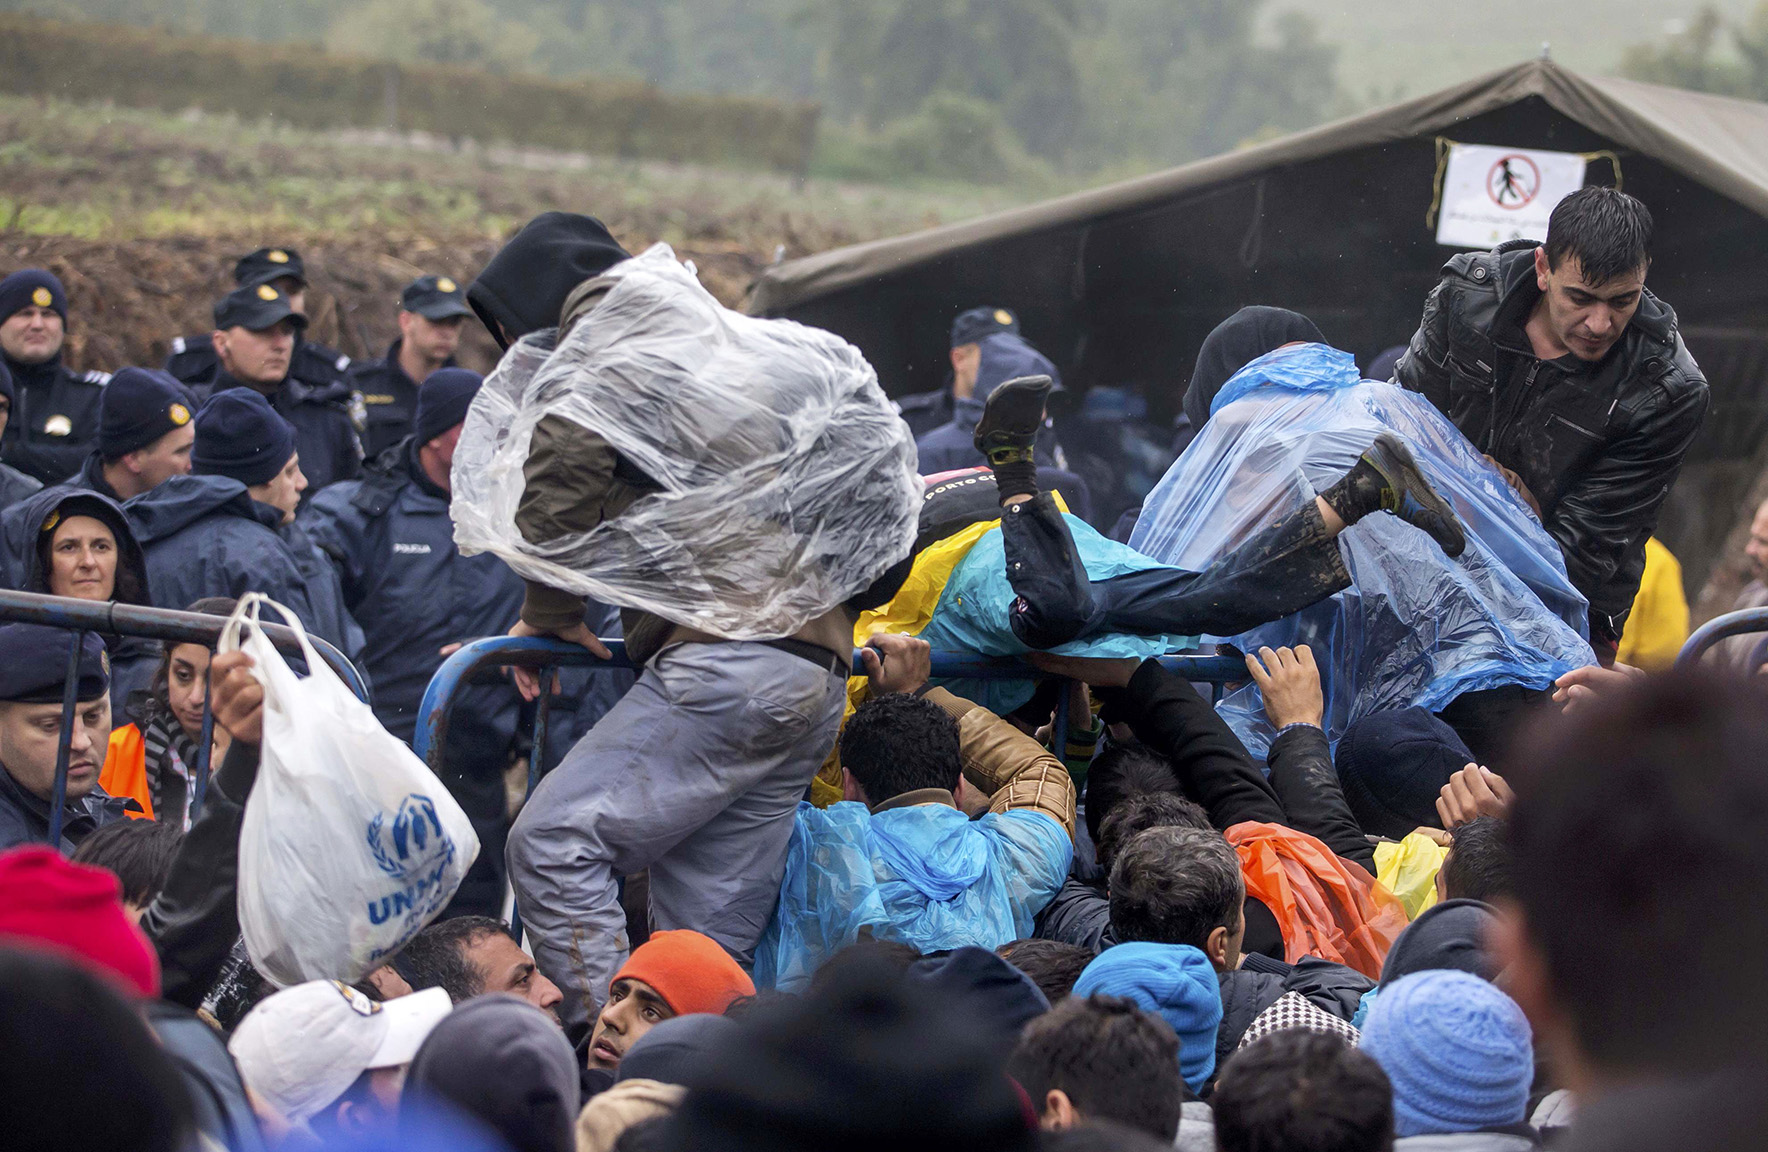 Migrants jump over a fence as they attempt to cross the Croatian border near the village of Berkasovo